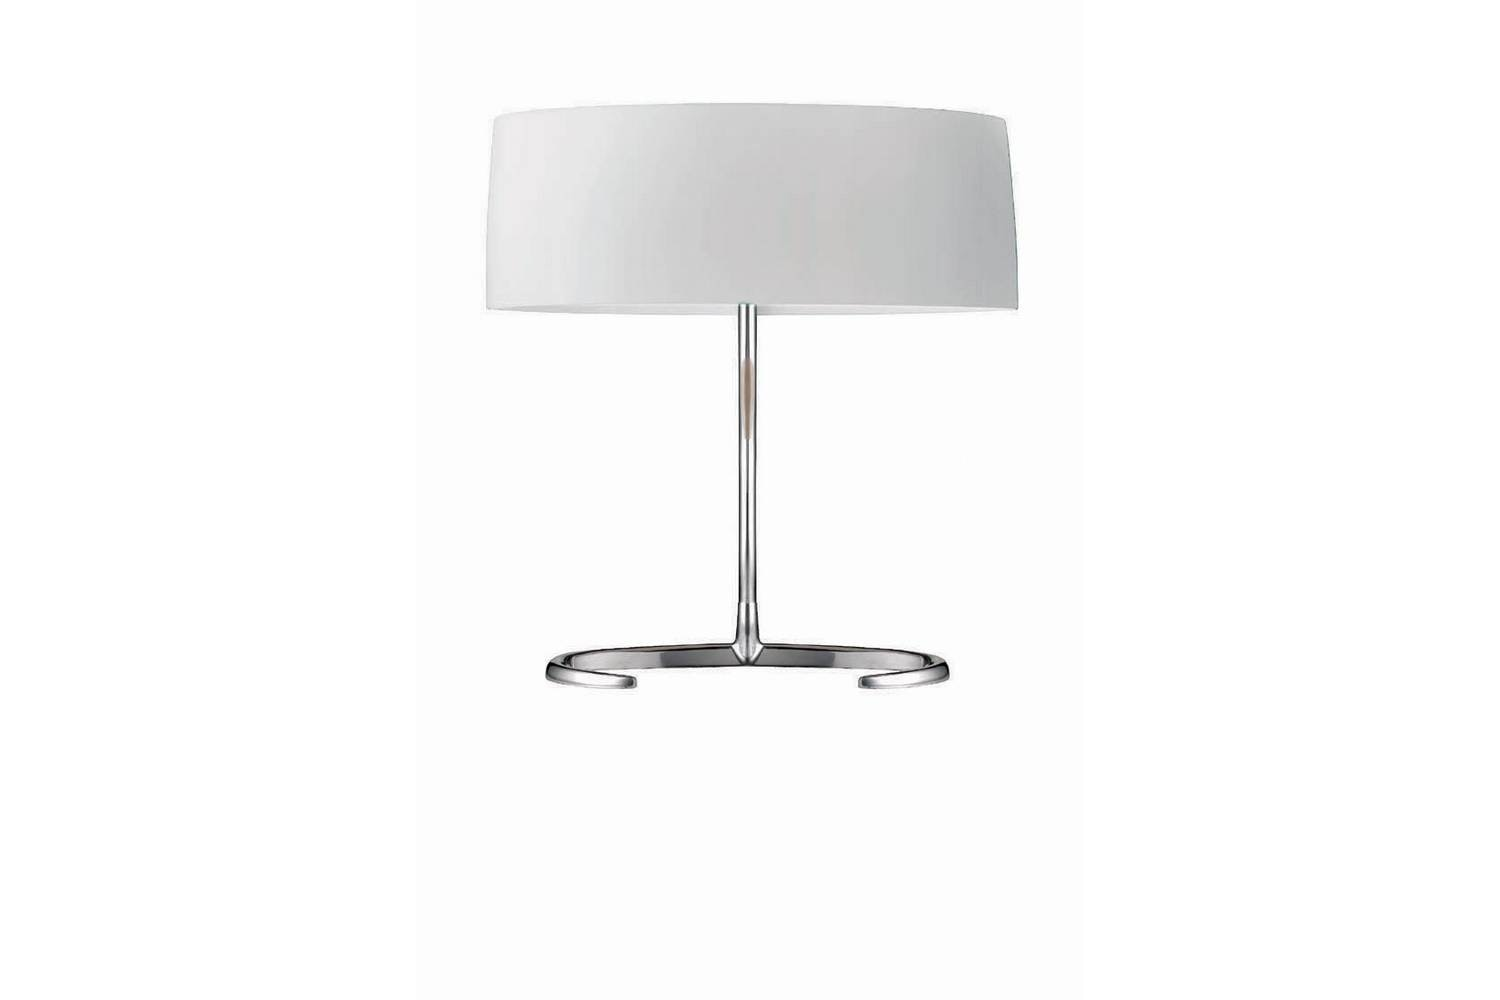 Esa 07 Table Lamp by Lievore Asociados for Foscarini